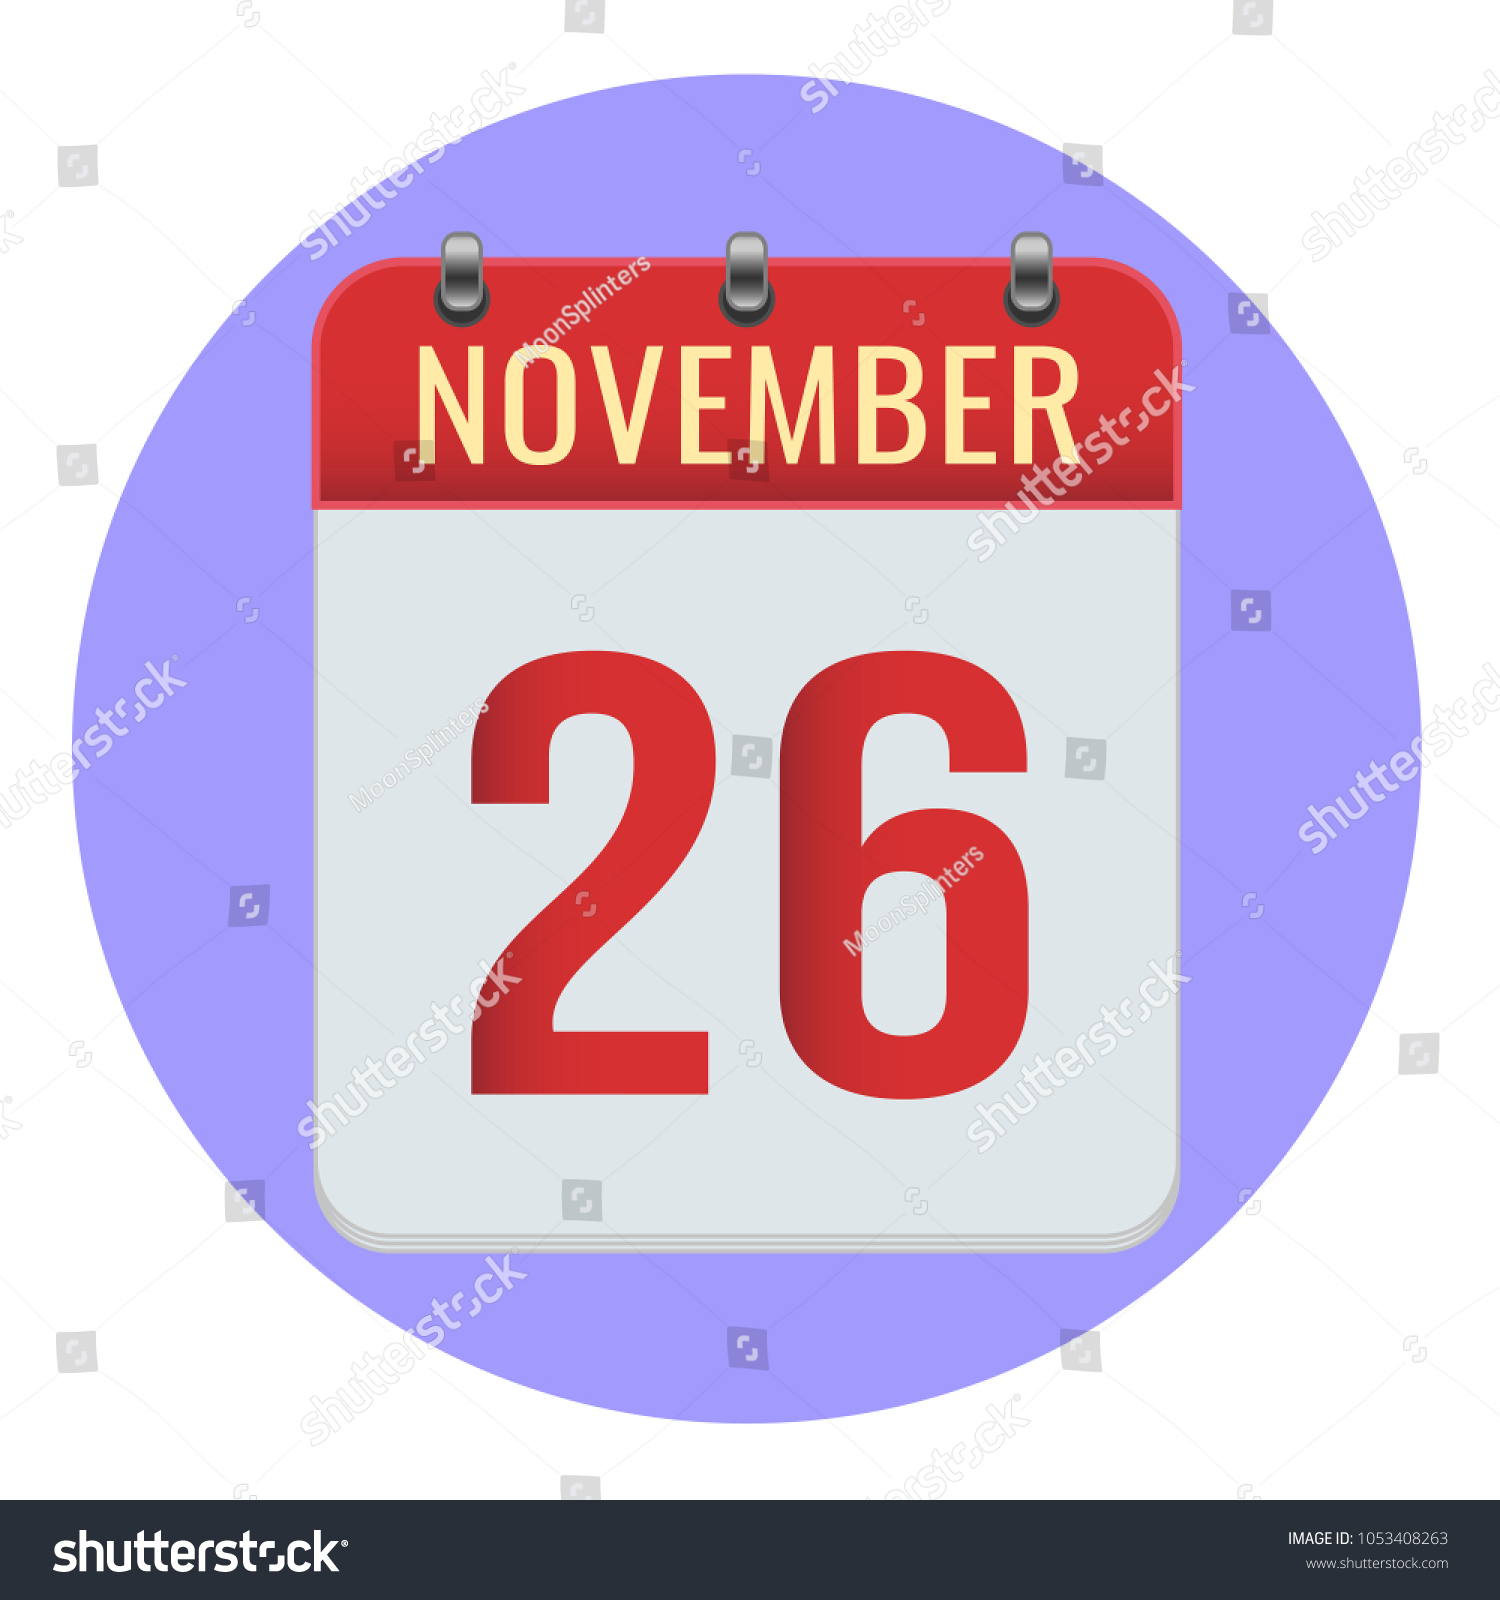 November 26 Vector Flat Daily Calendar Stock Vector Royalty Free